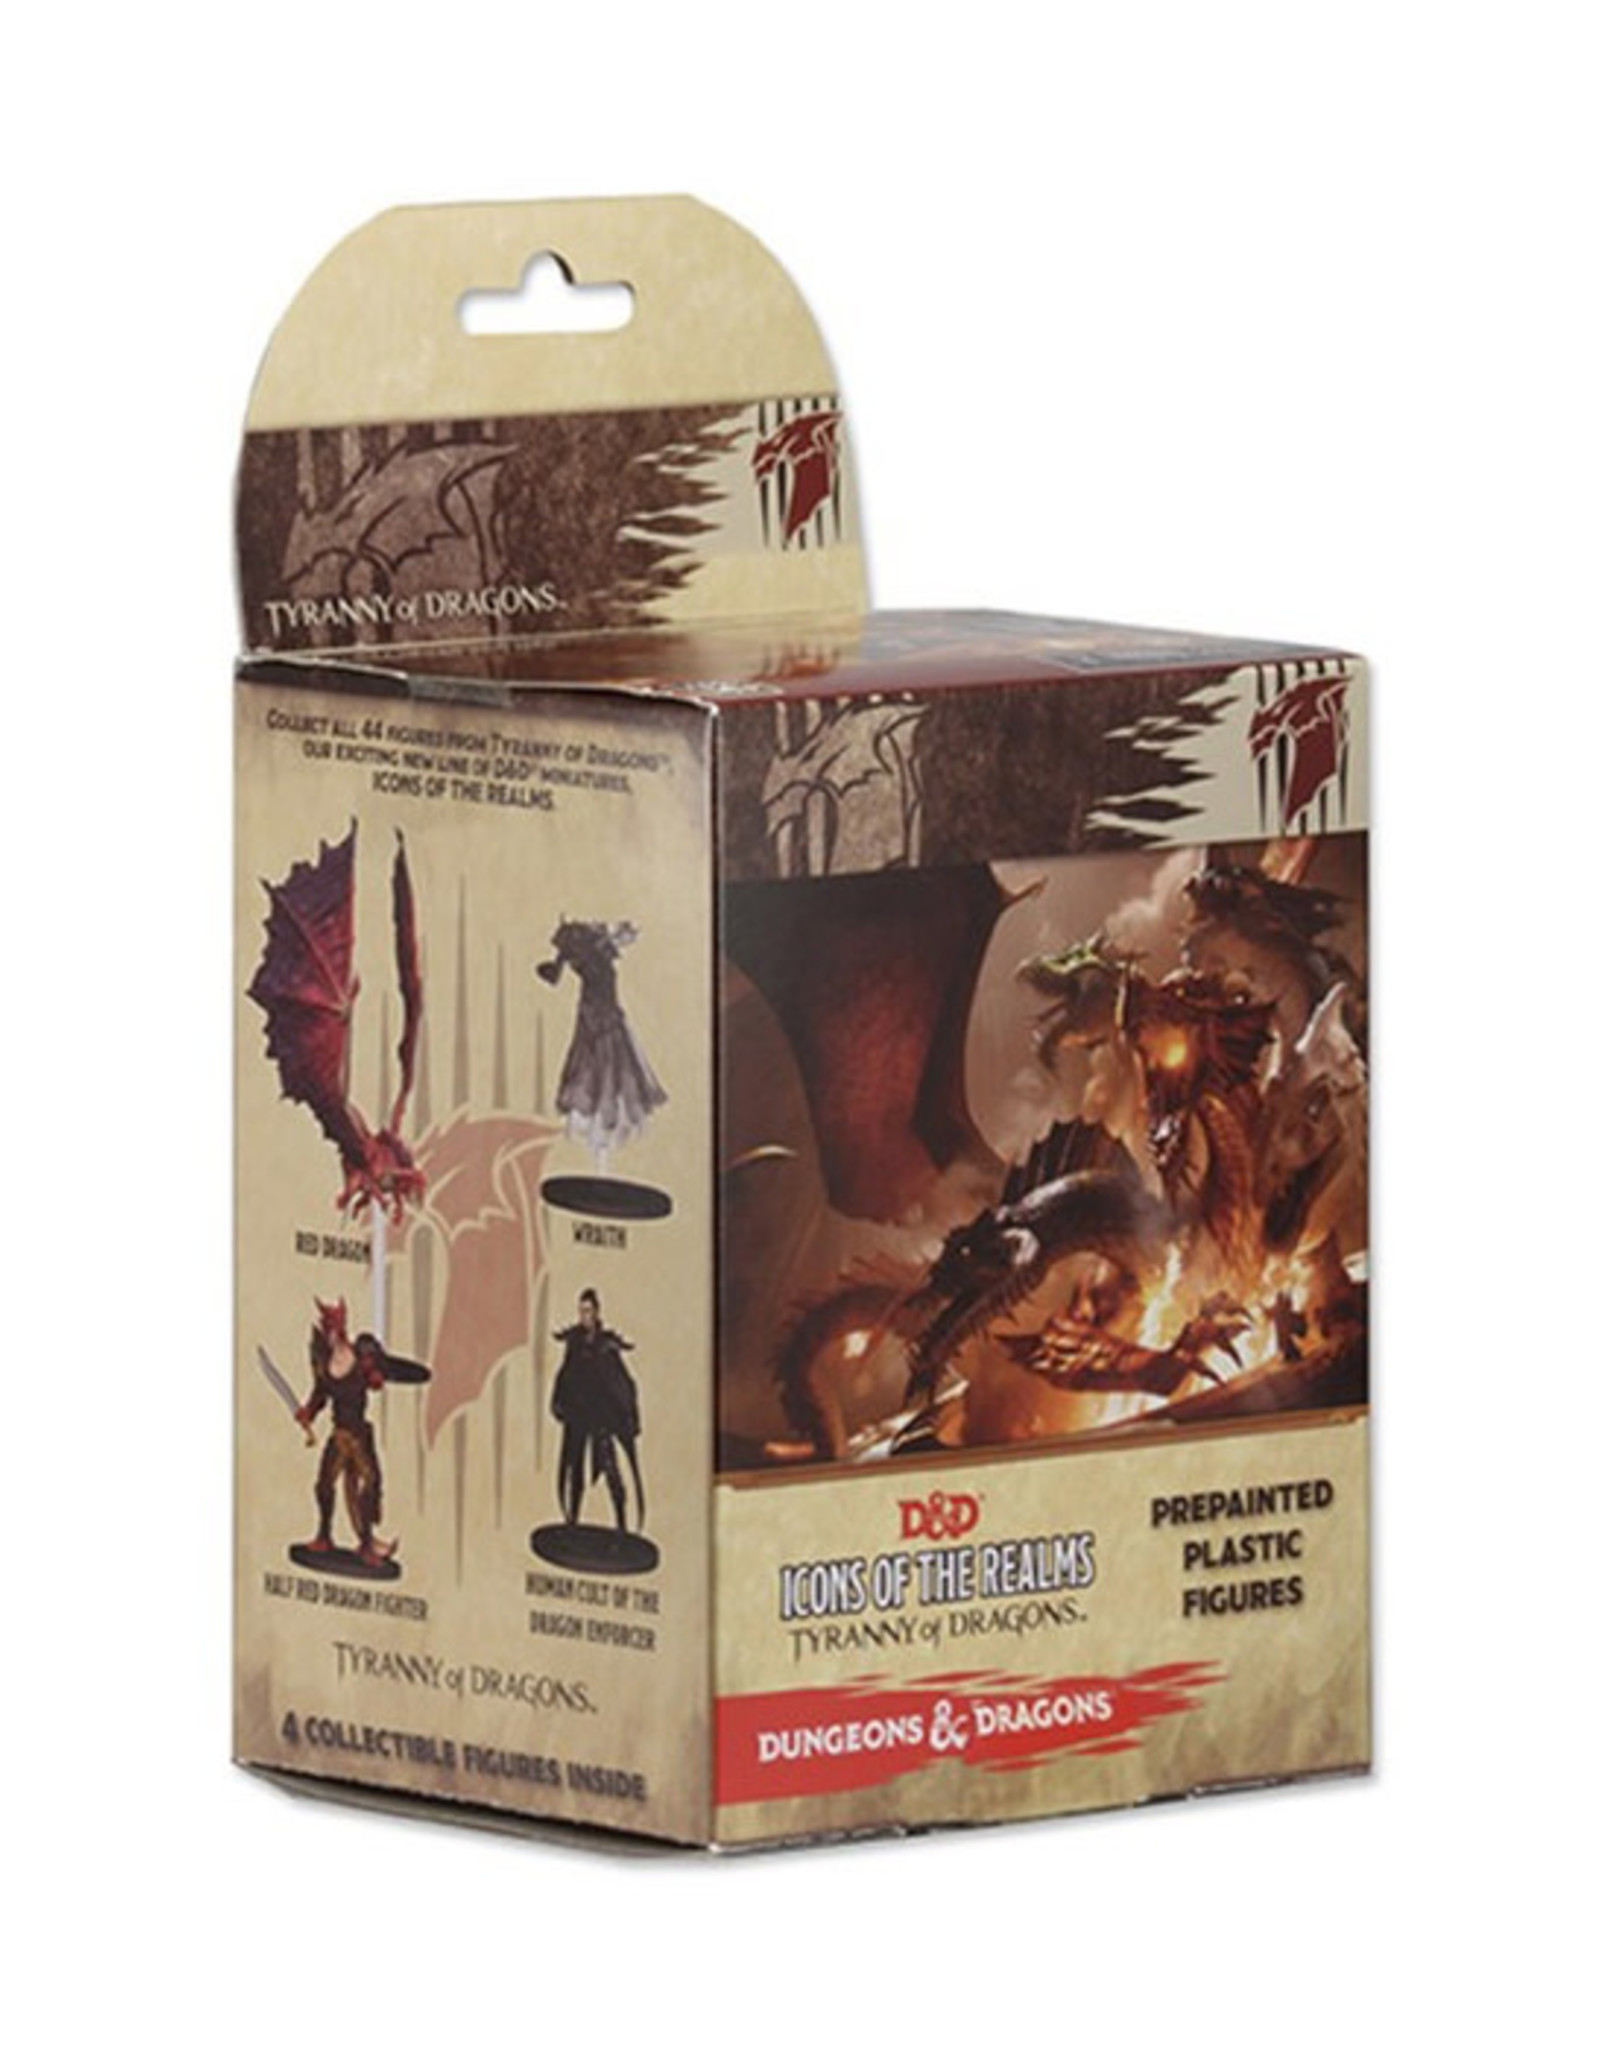 Dungeons & Dragons Dungeons & Dragons: Icons of the Realms - Tyranny of Dragons - Booster Pack